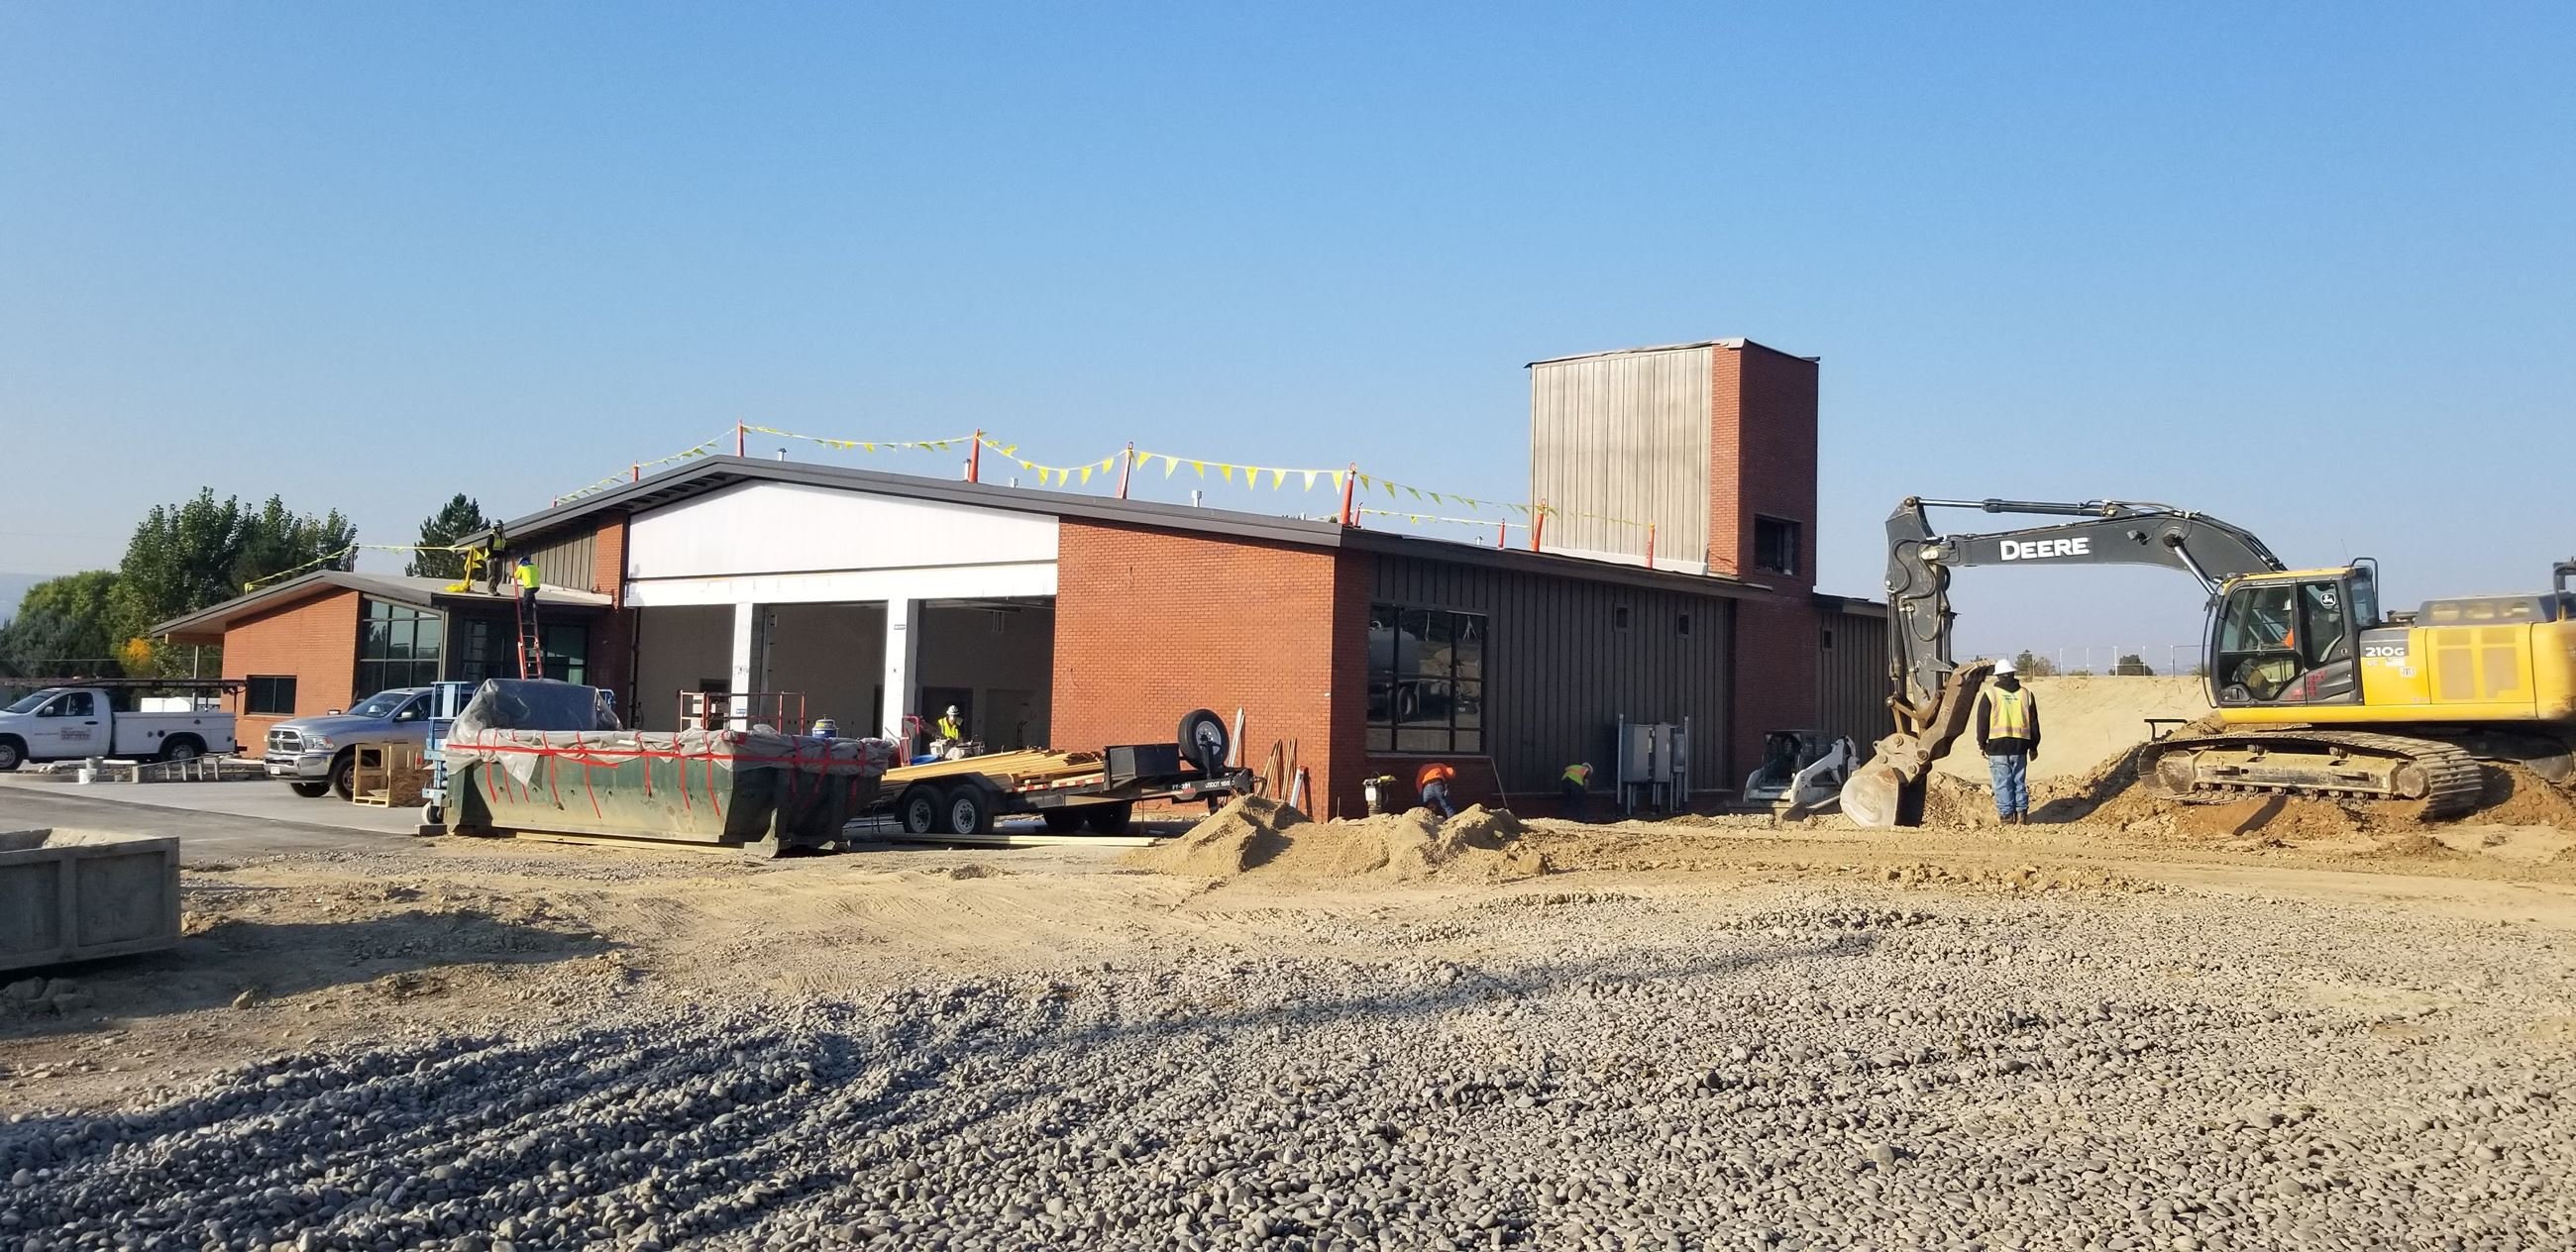 Station 6 Construction Update - October 6th